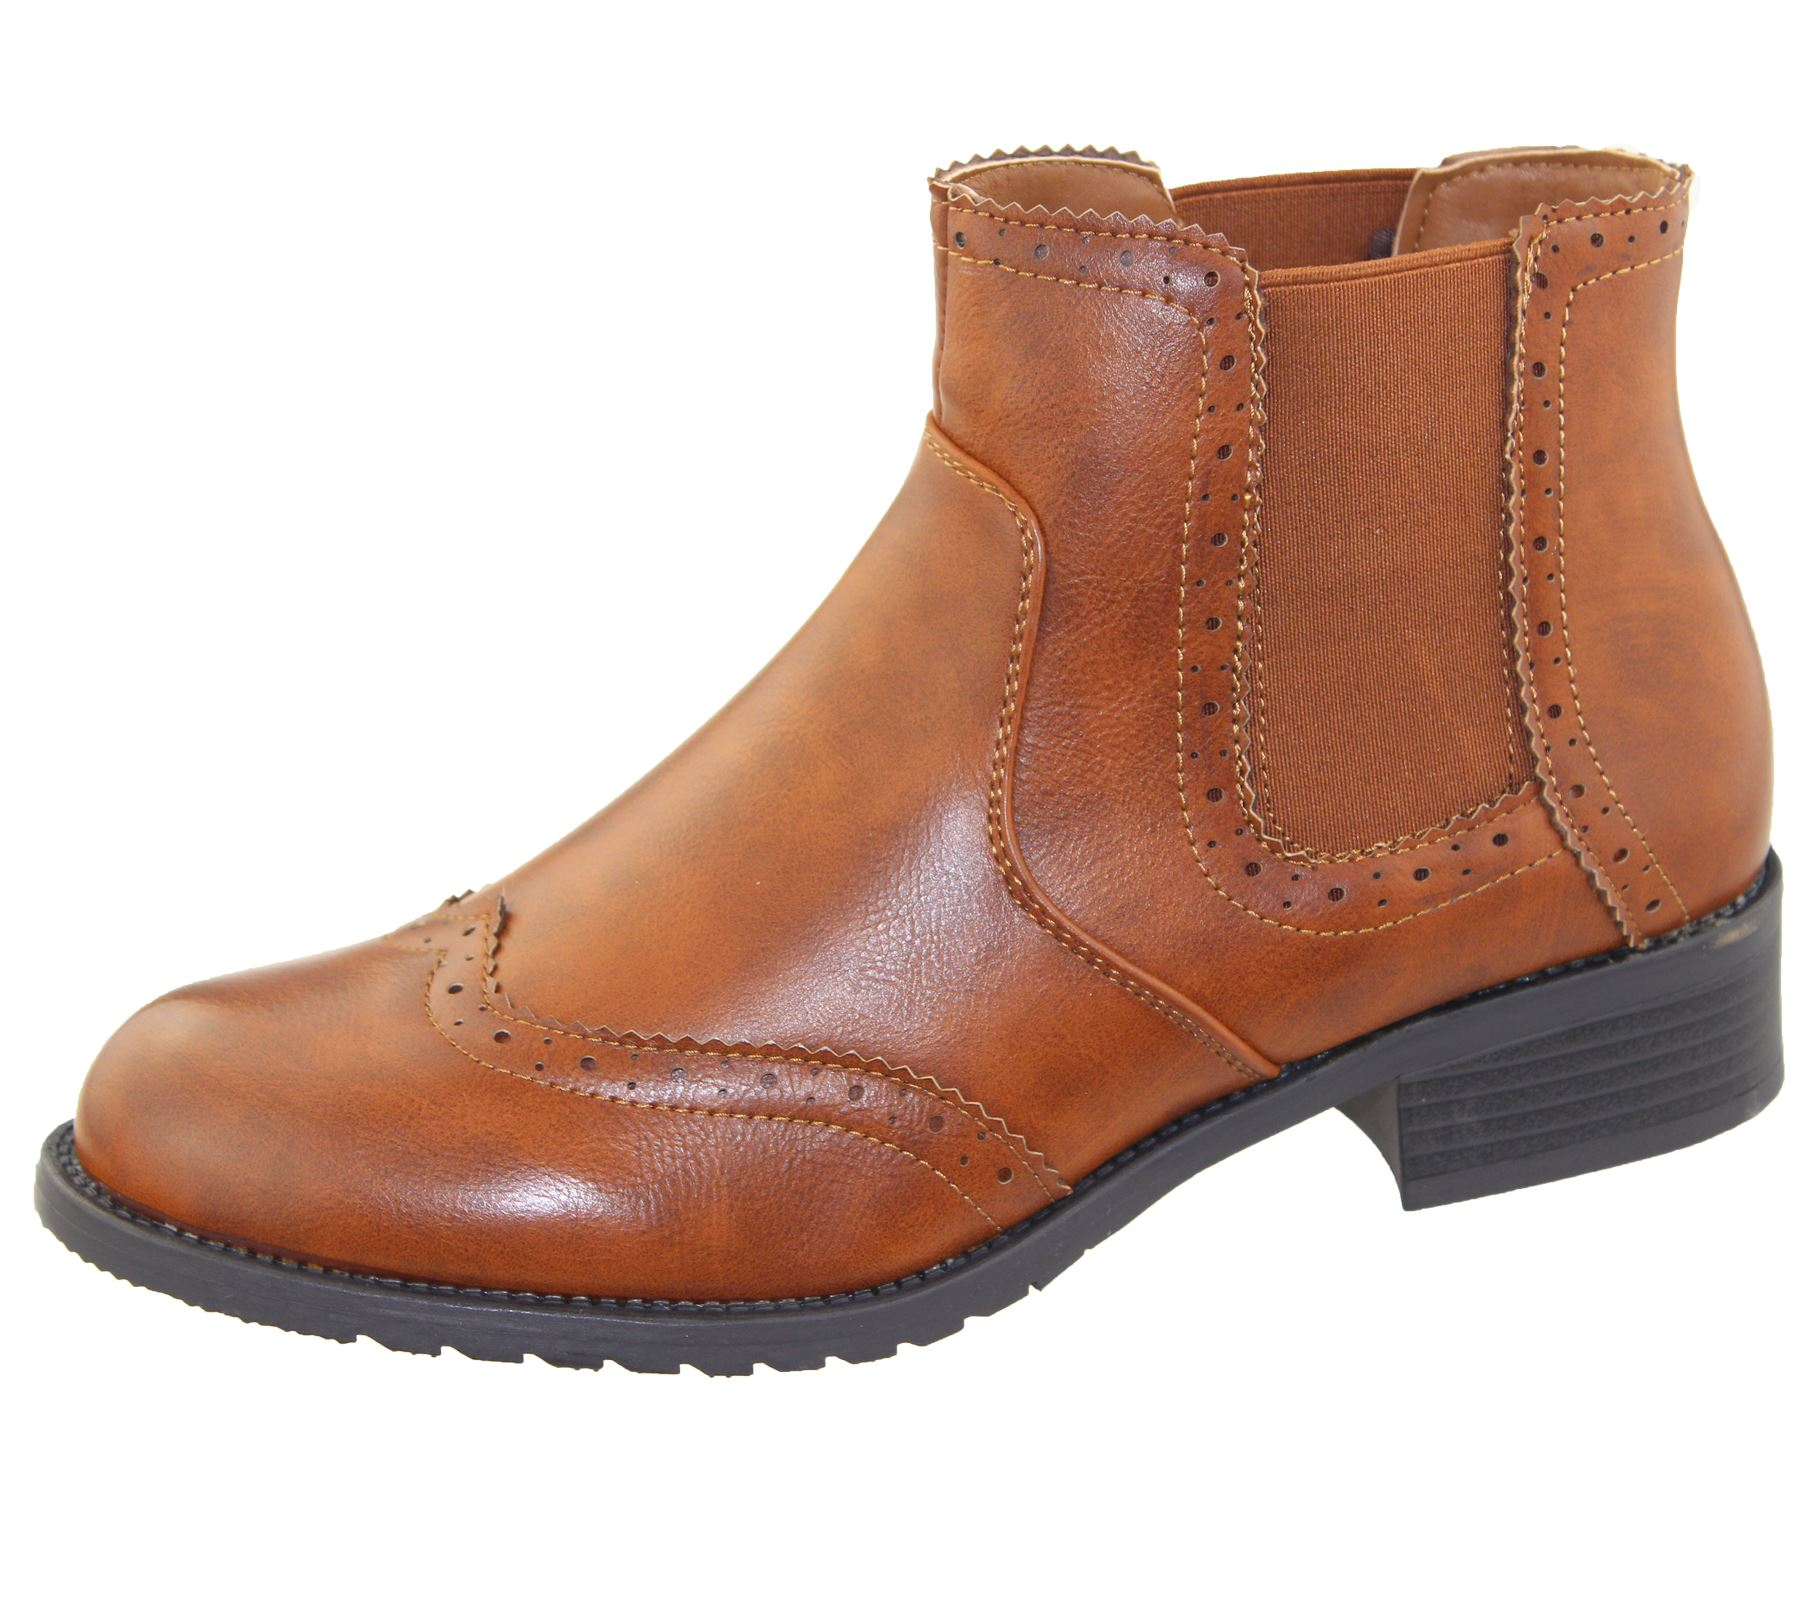 Women's Ankle Boots are a trendy alternative to taller knee or thigh-high boots, and we have various pairs from which to choose. We carry top brands like Frye, .